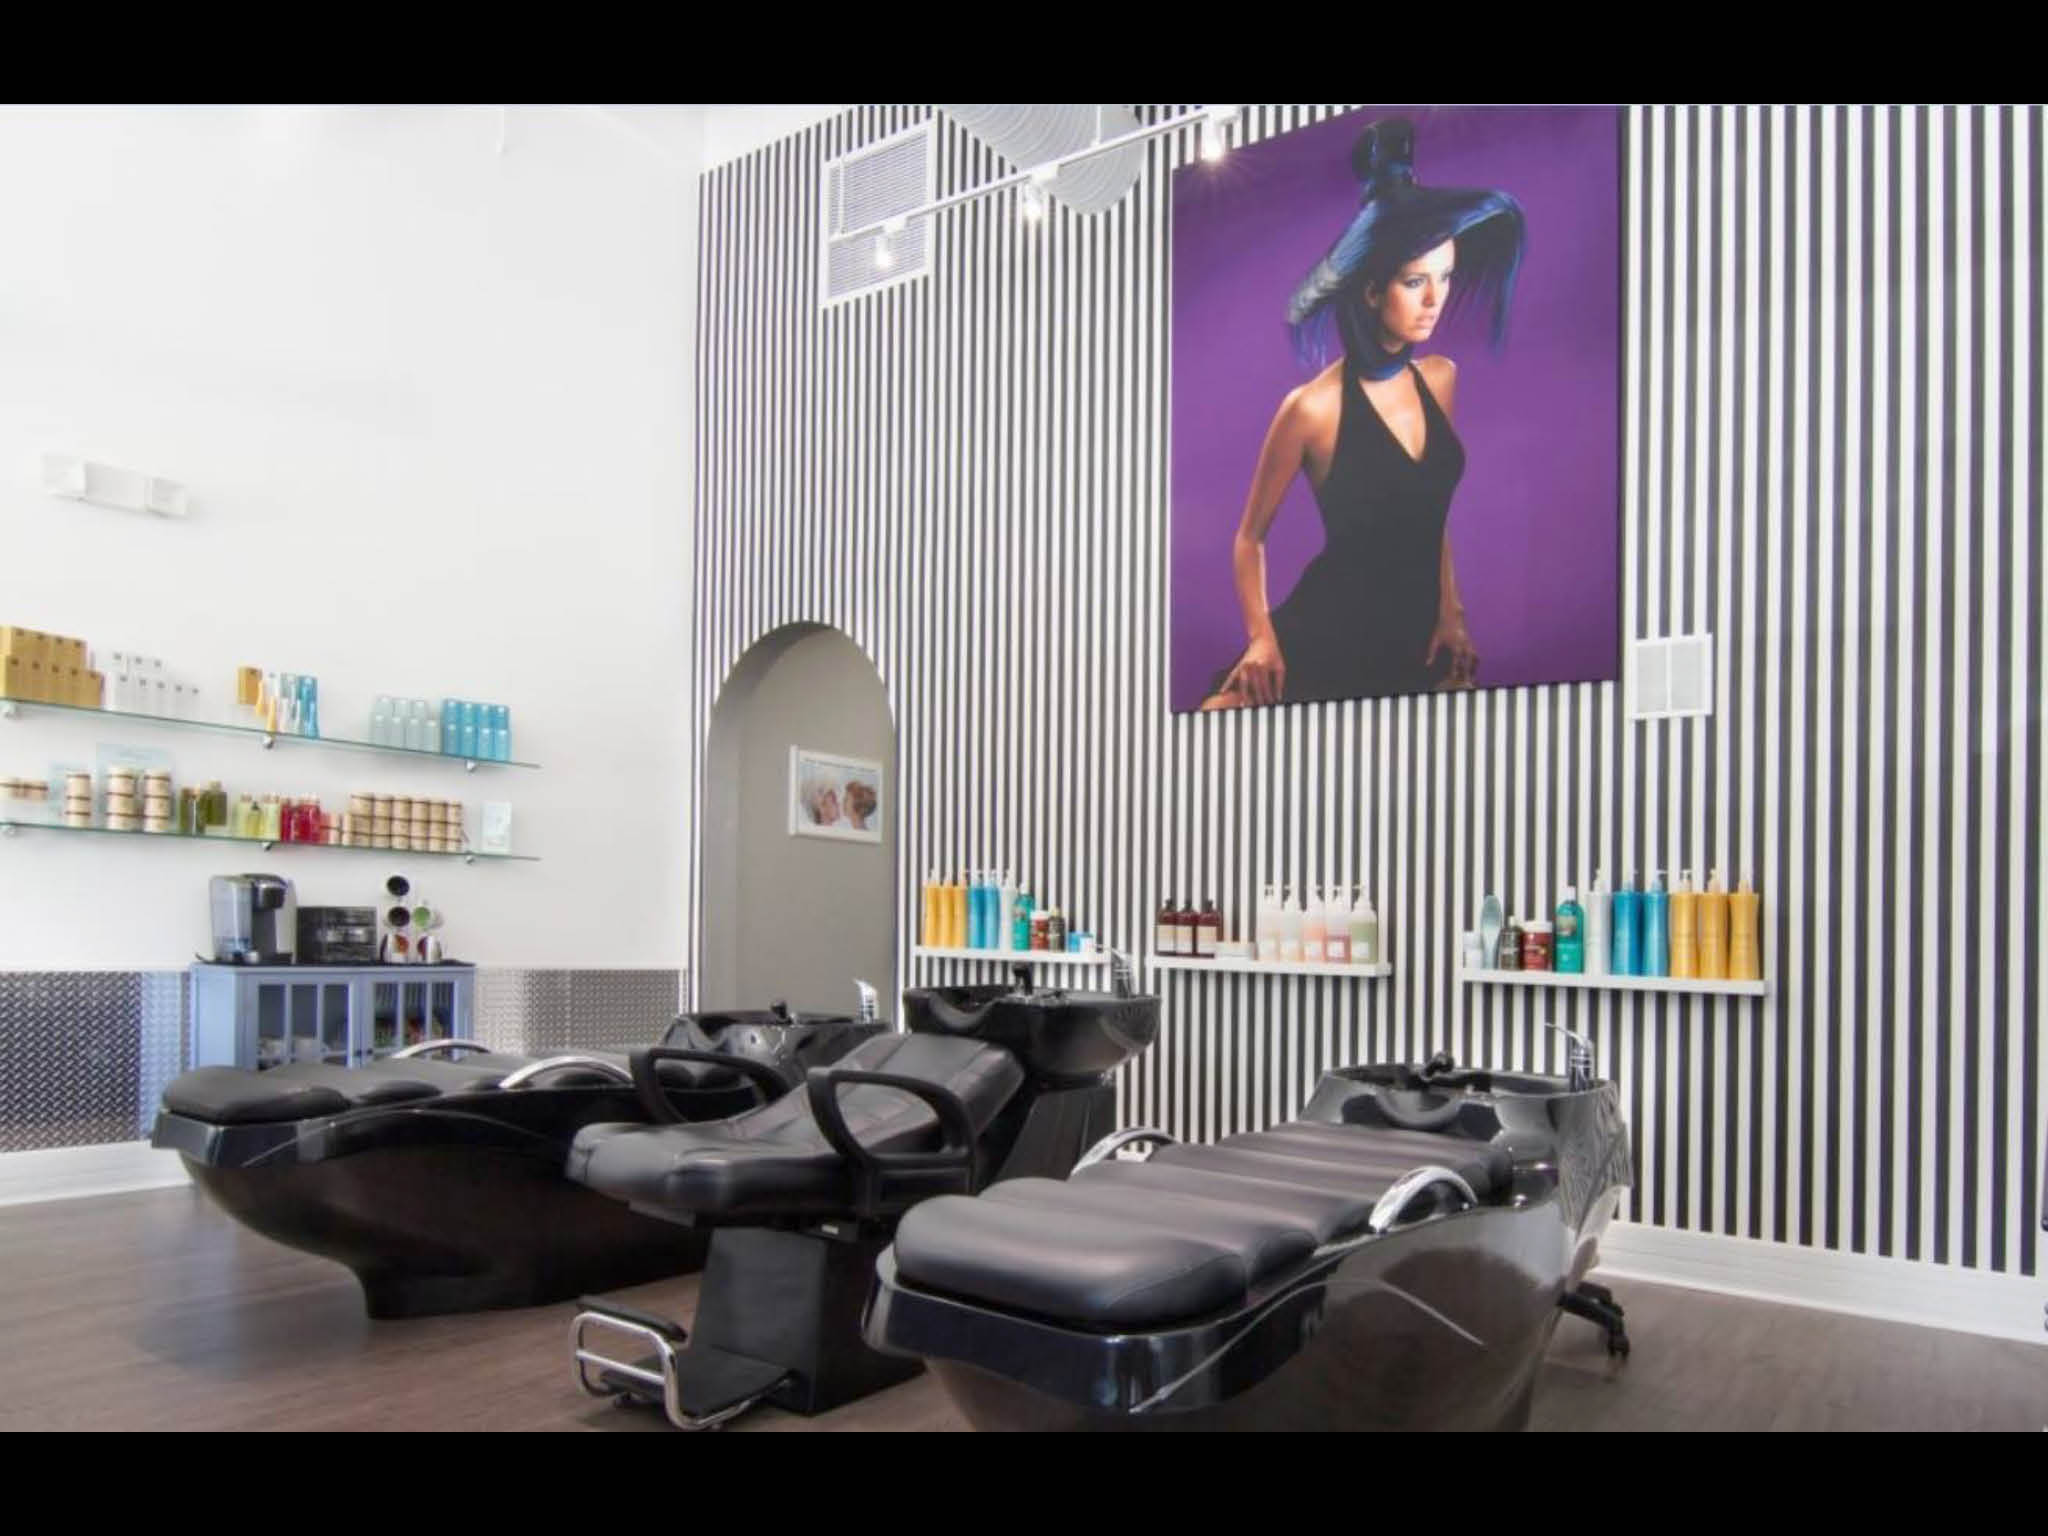 Hair Studio Artists seating area in the salon.